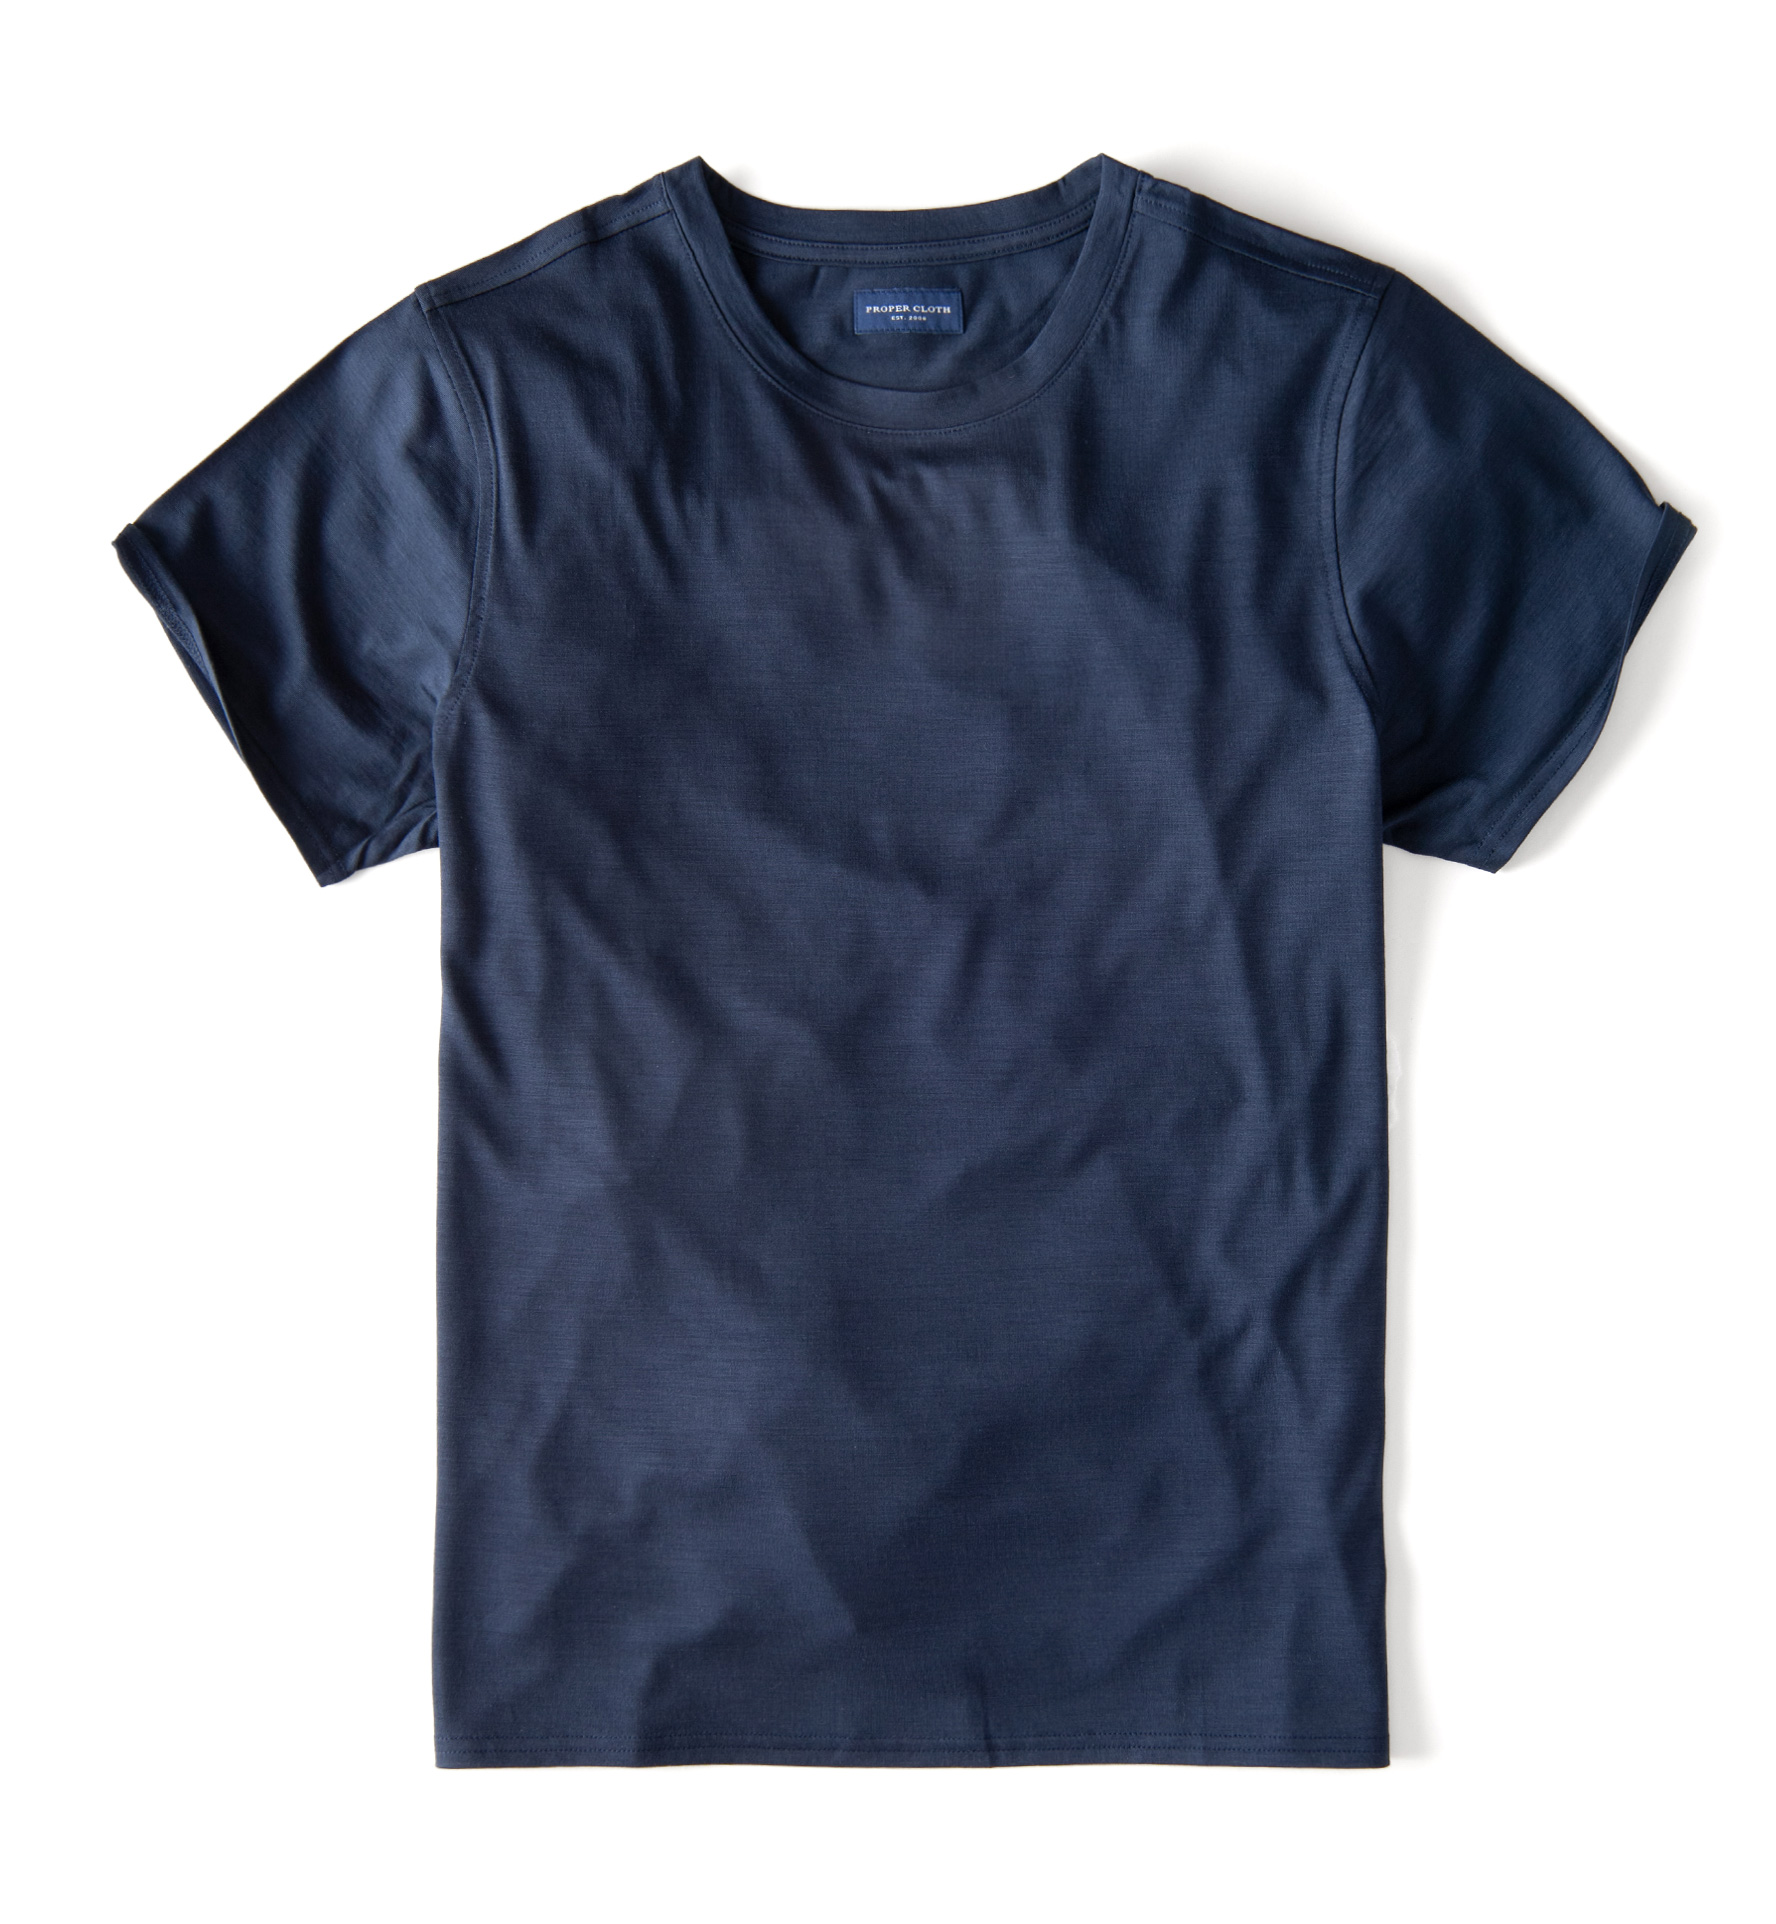 Zoom Image of Navy Merino Wool Crewneck T-Shirt